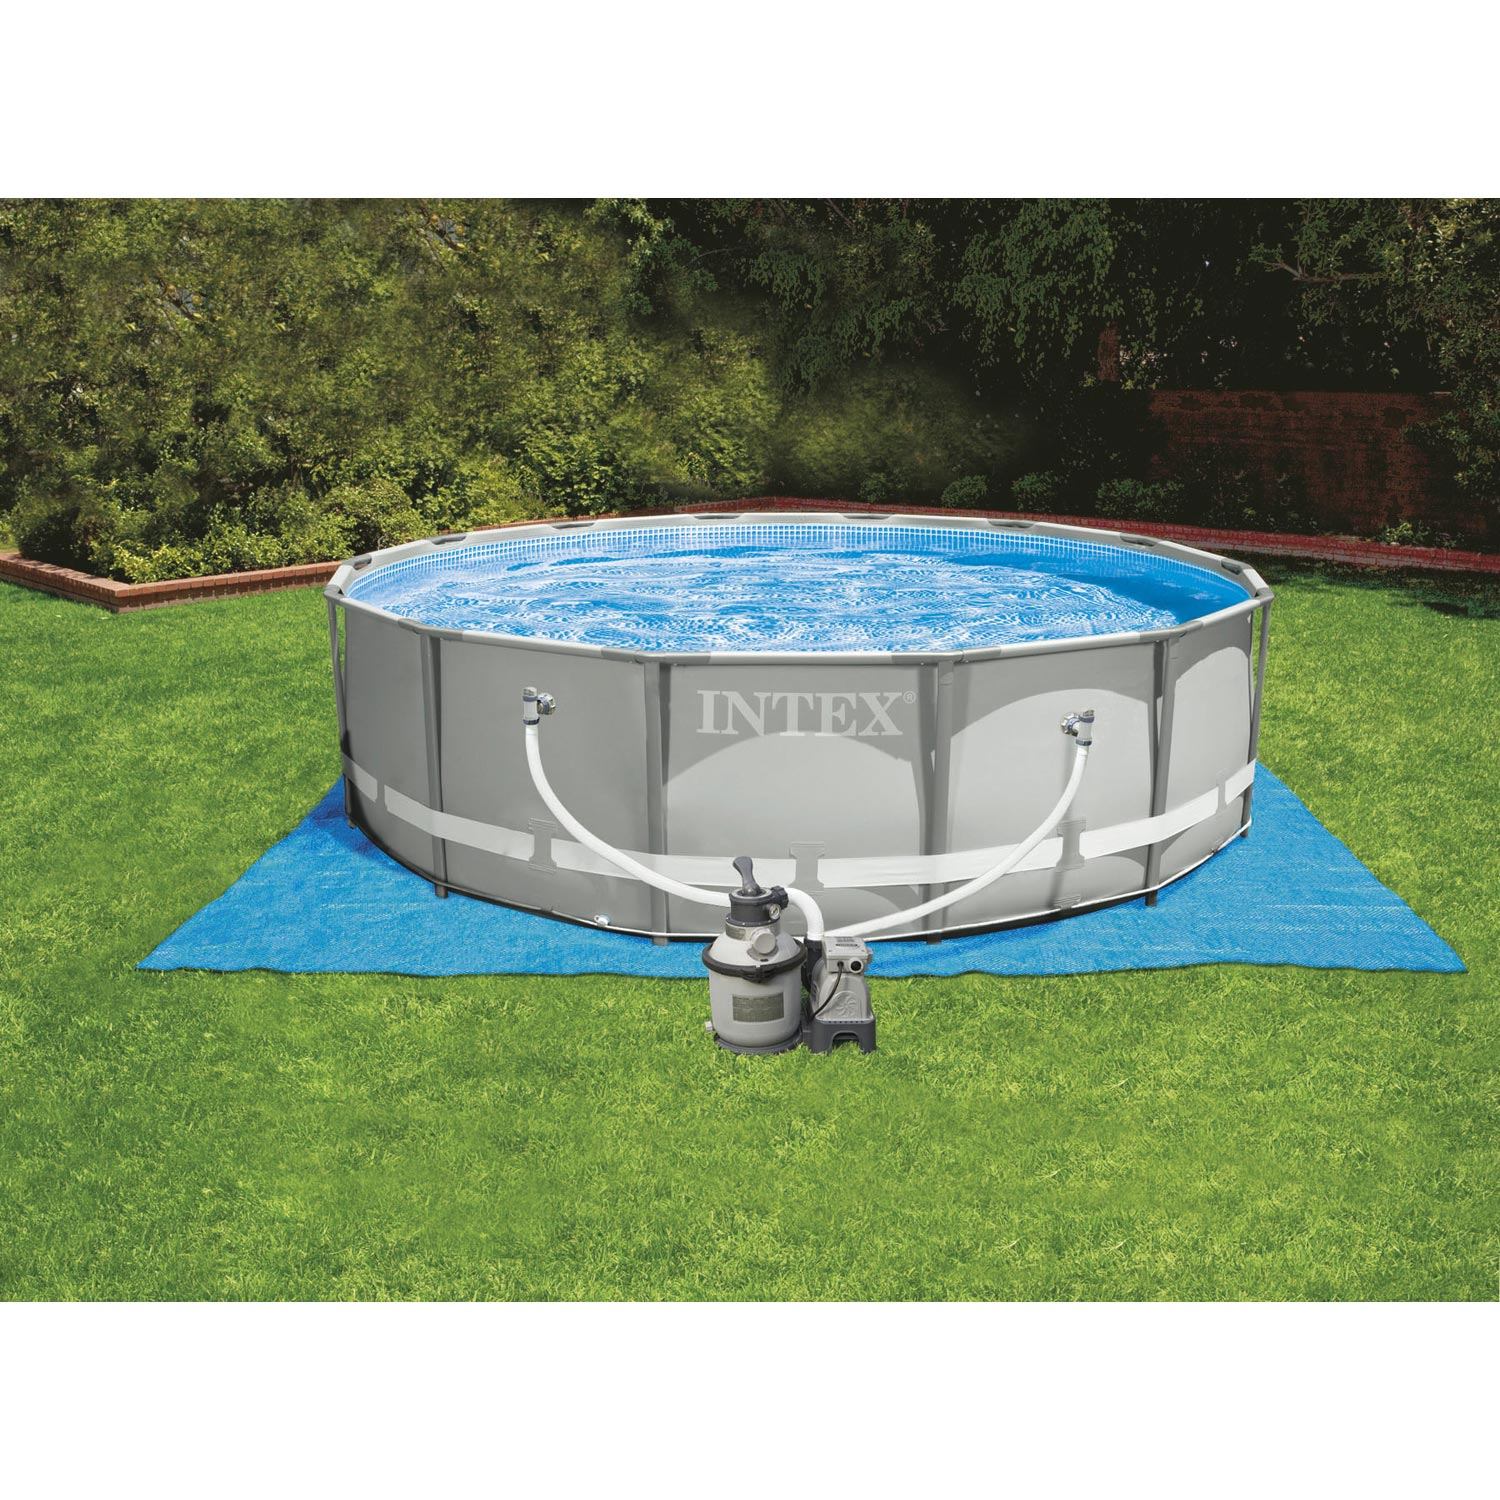 Piscine hors sol autoportante tubulaire ultra frame intex for Piscine hexagonale hors sol